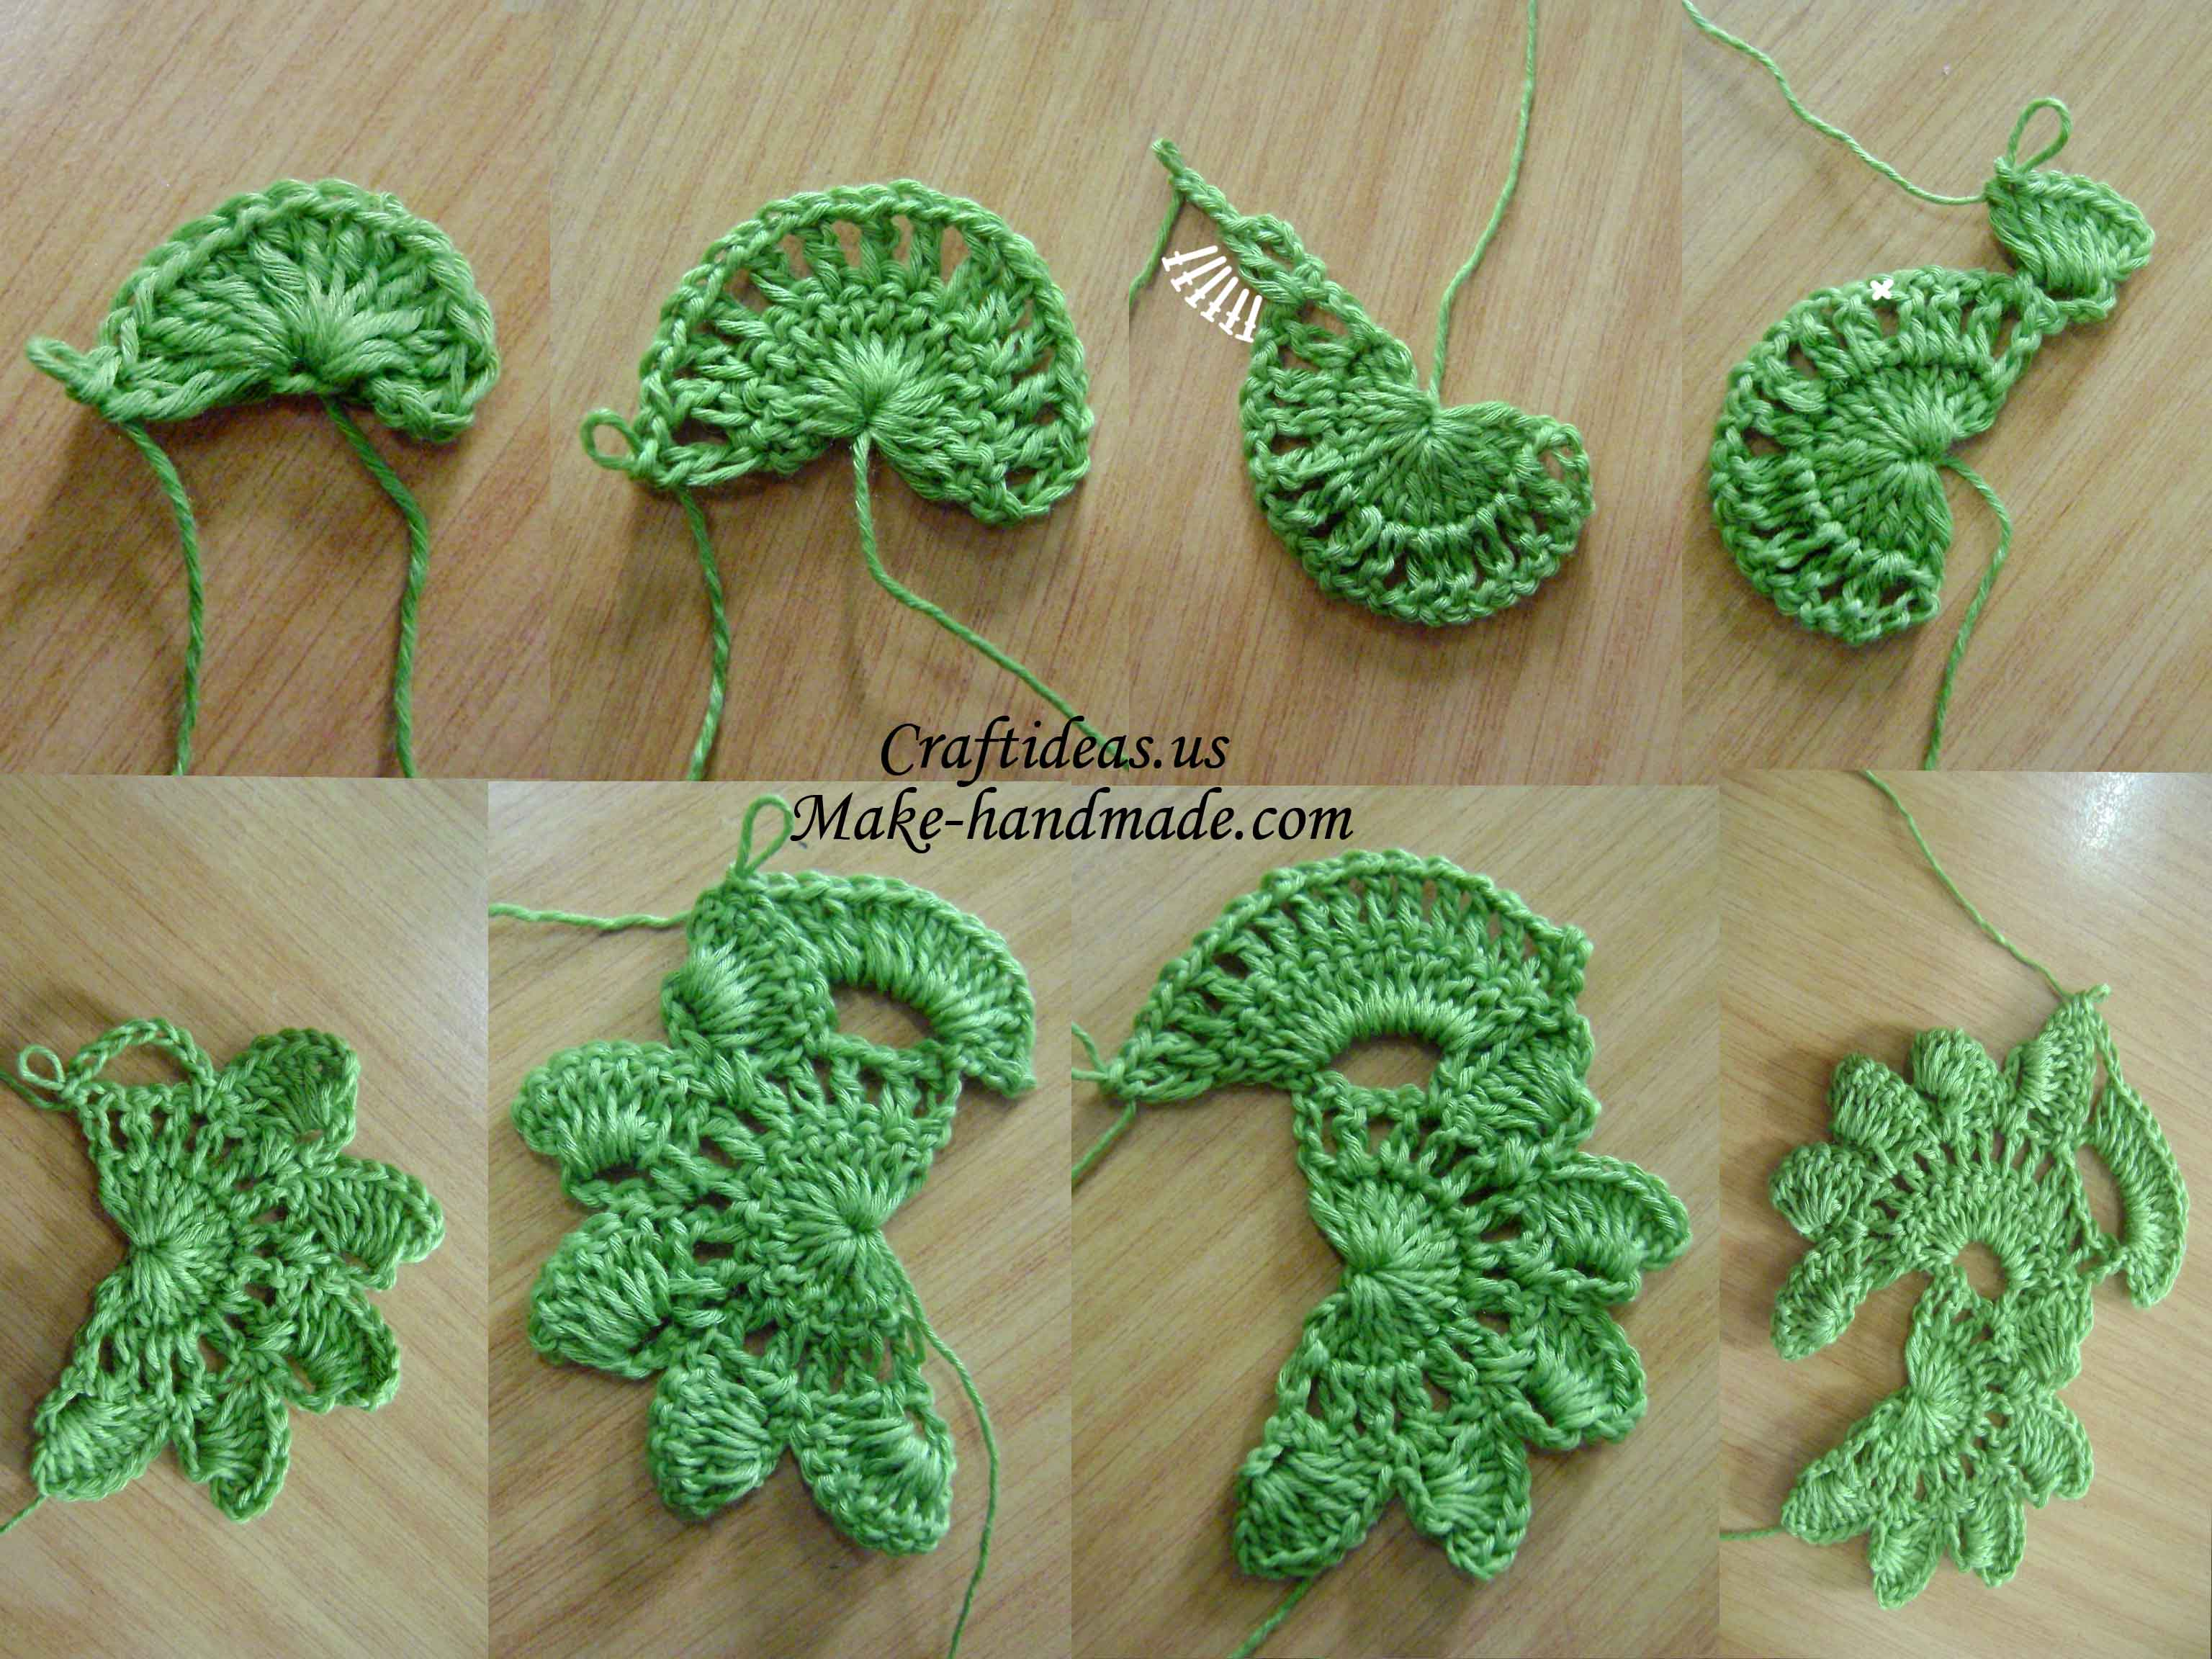 What Is Crochet : Alfa img - Showing > Crochet Flower Tutorial Step by Step